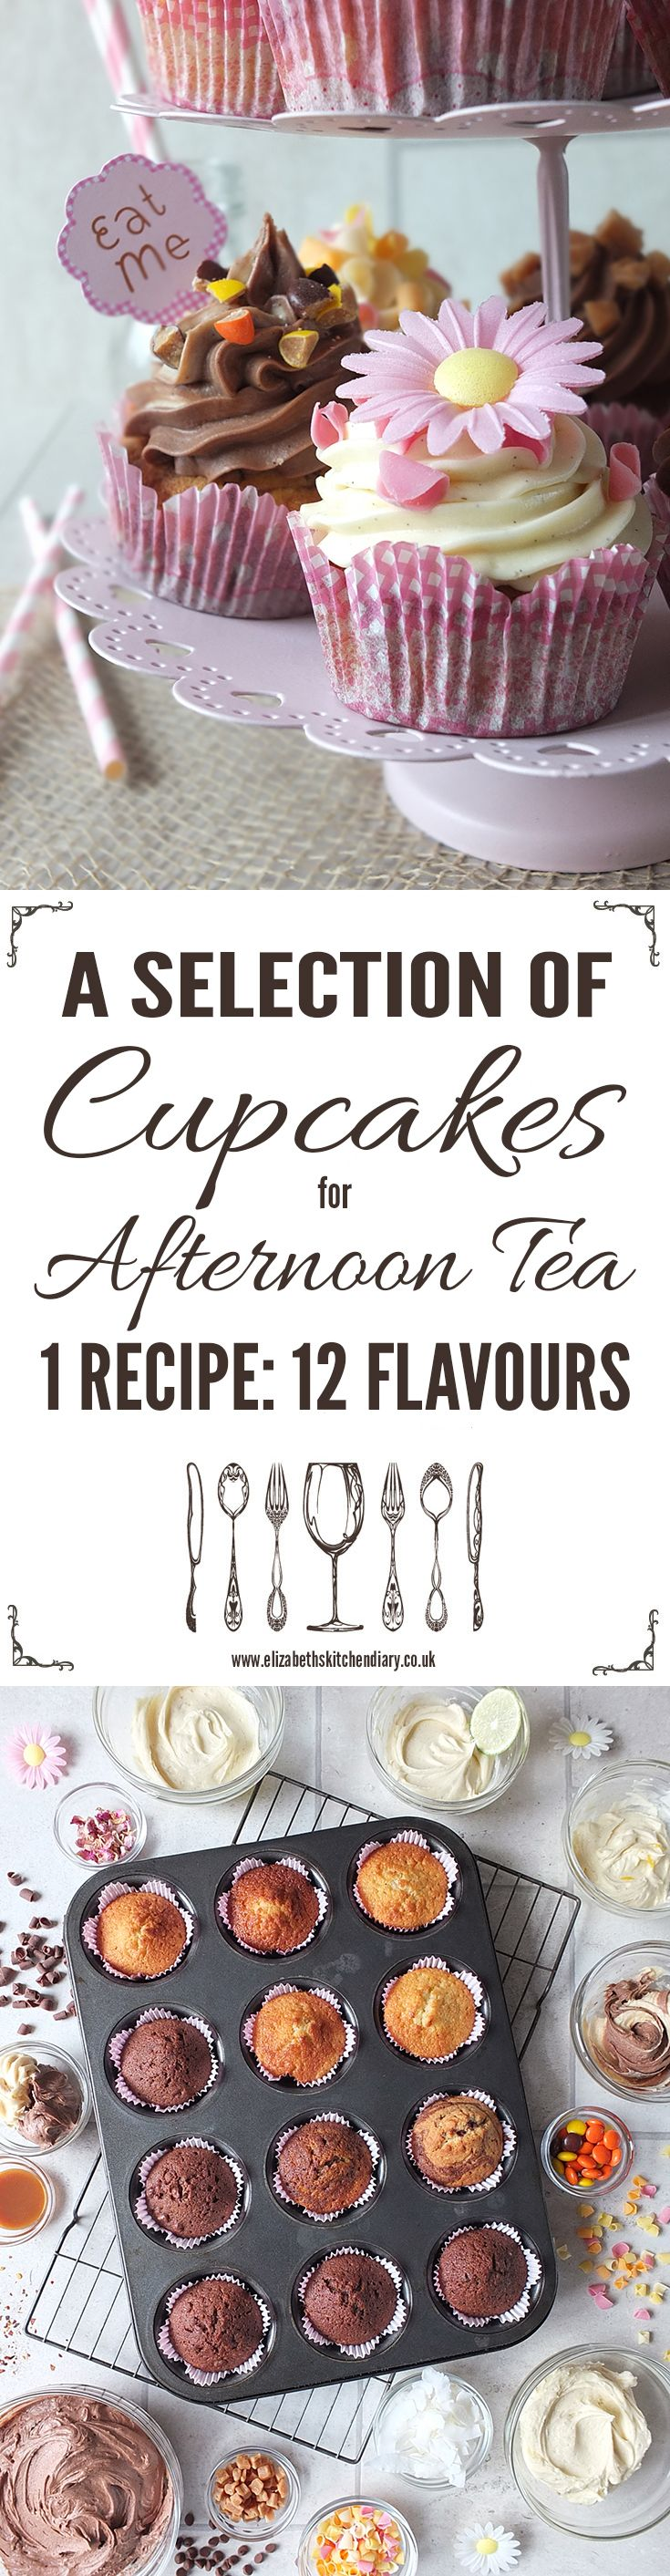 Cupcakes are an integral part of an Afternoon Tea. My recipe makes one batch with twelve different flavours!